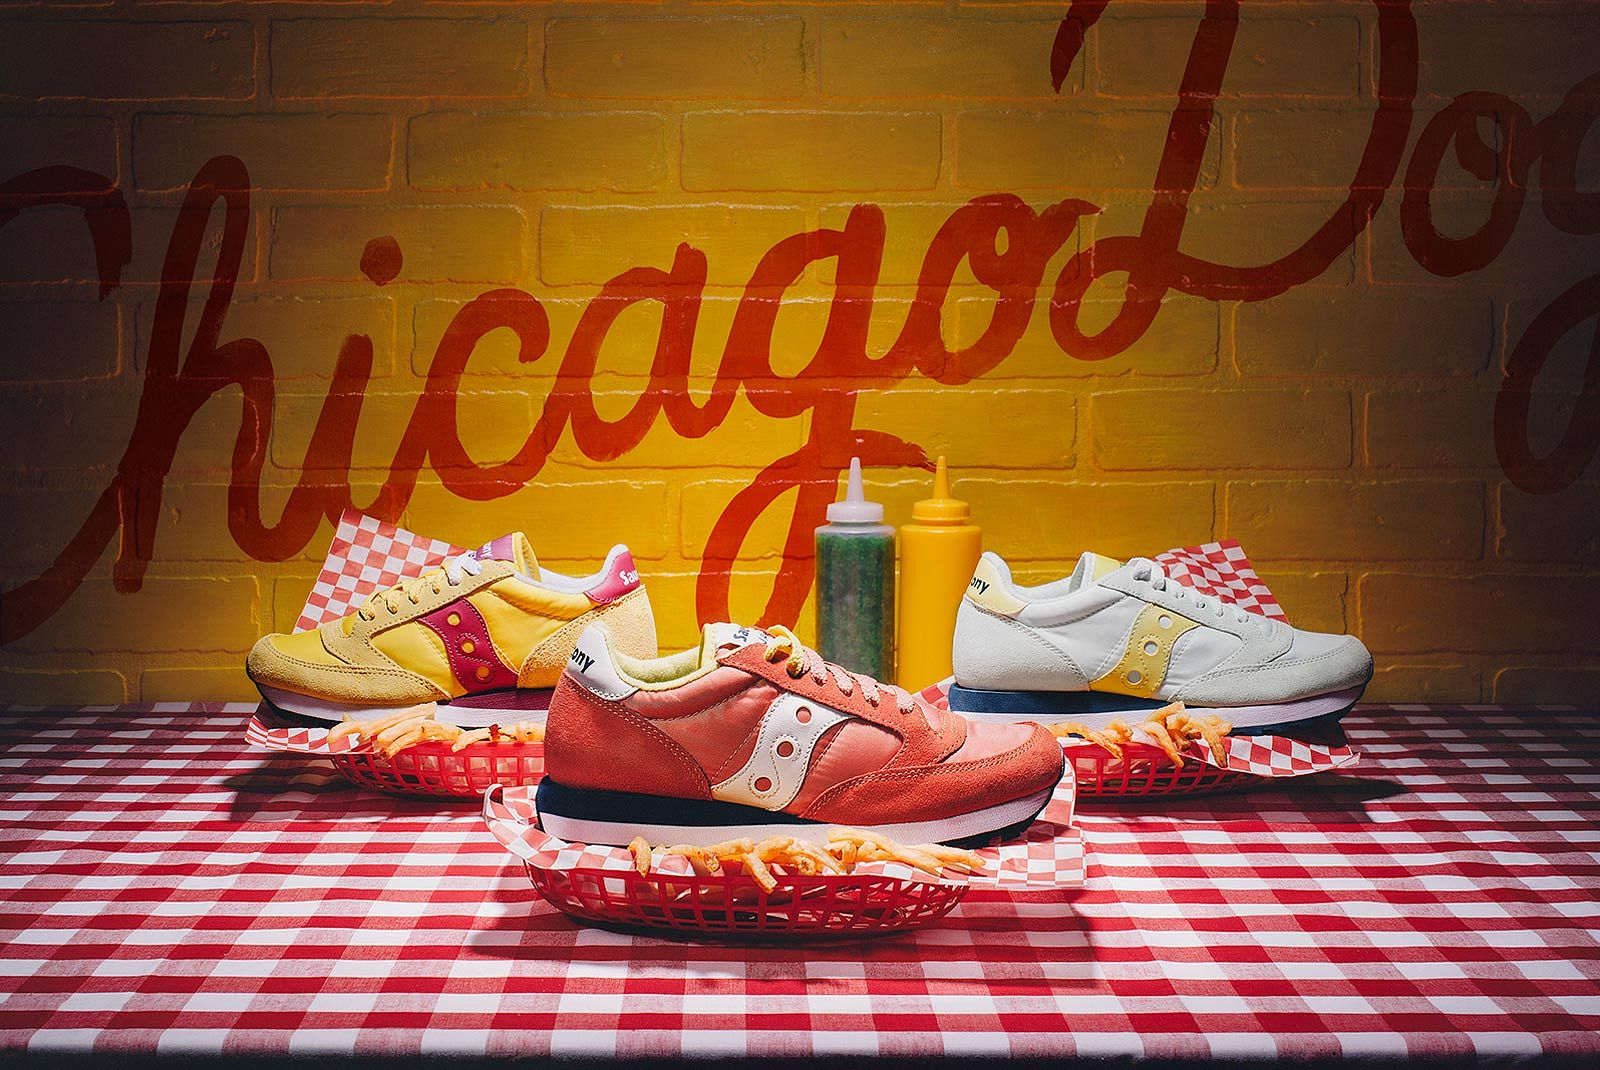 Saucony Chicago HotDog Concept Photoshoot